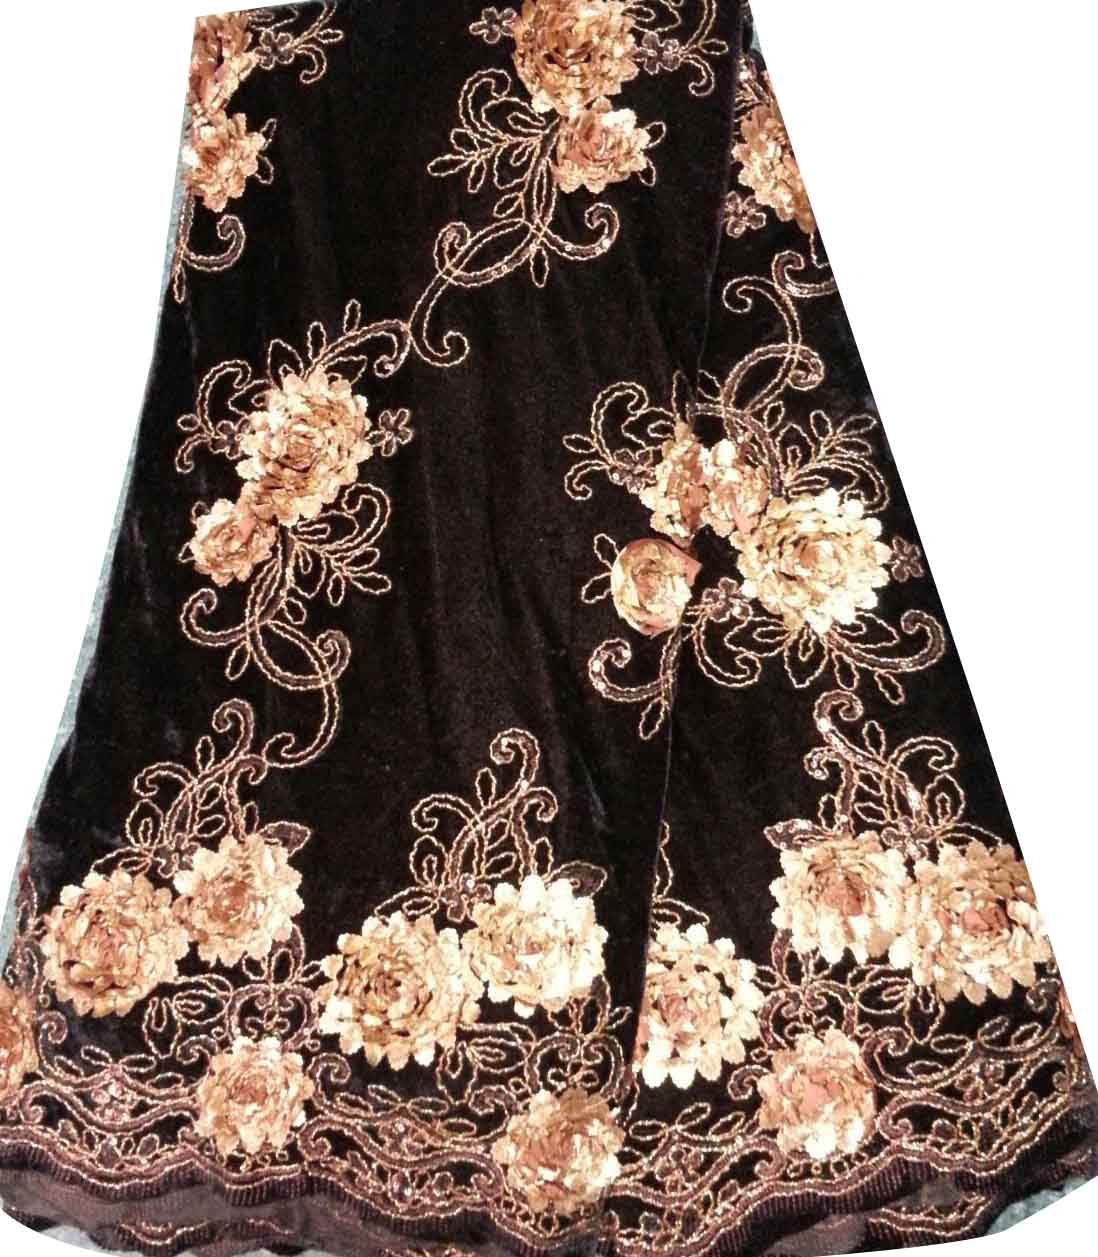 CL9205-1 embroidery velvet with flowers lace fabric